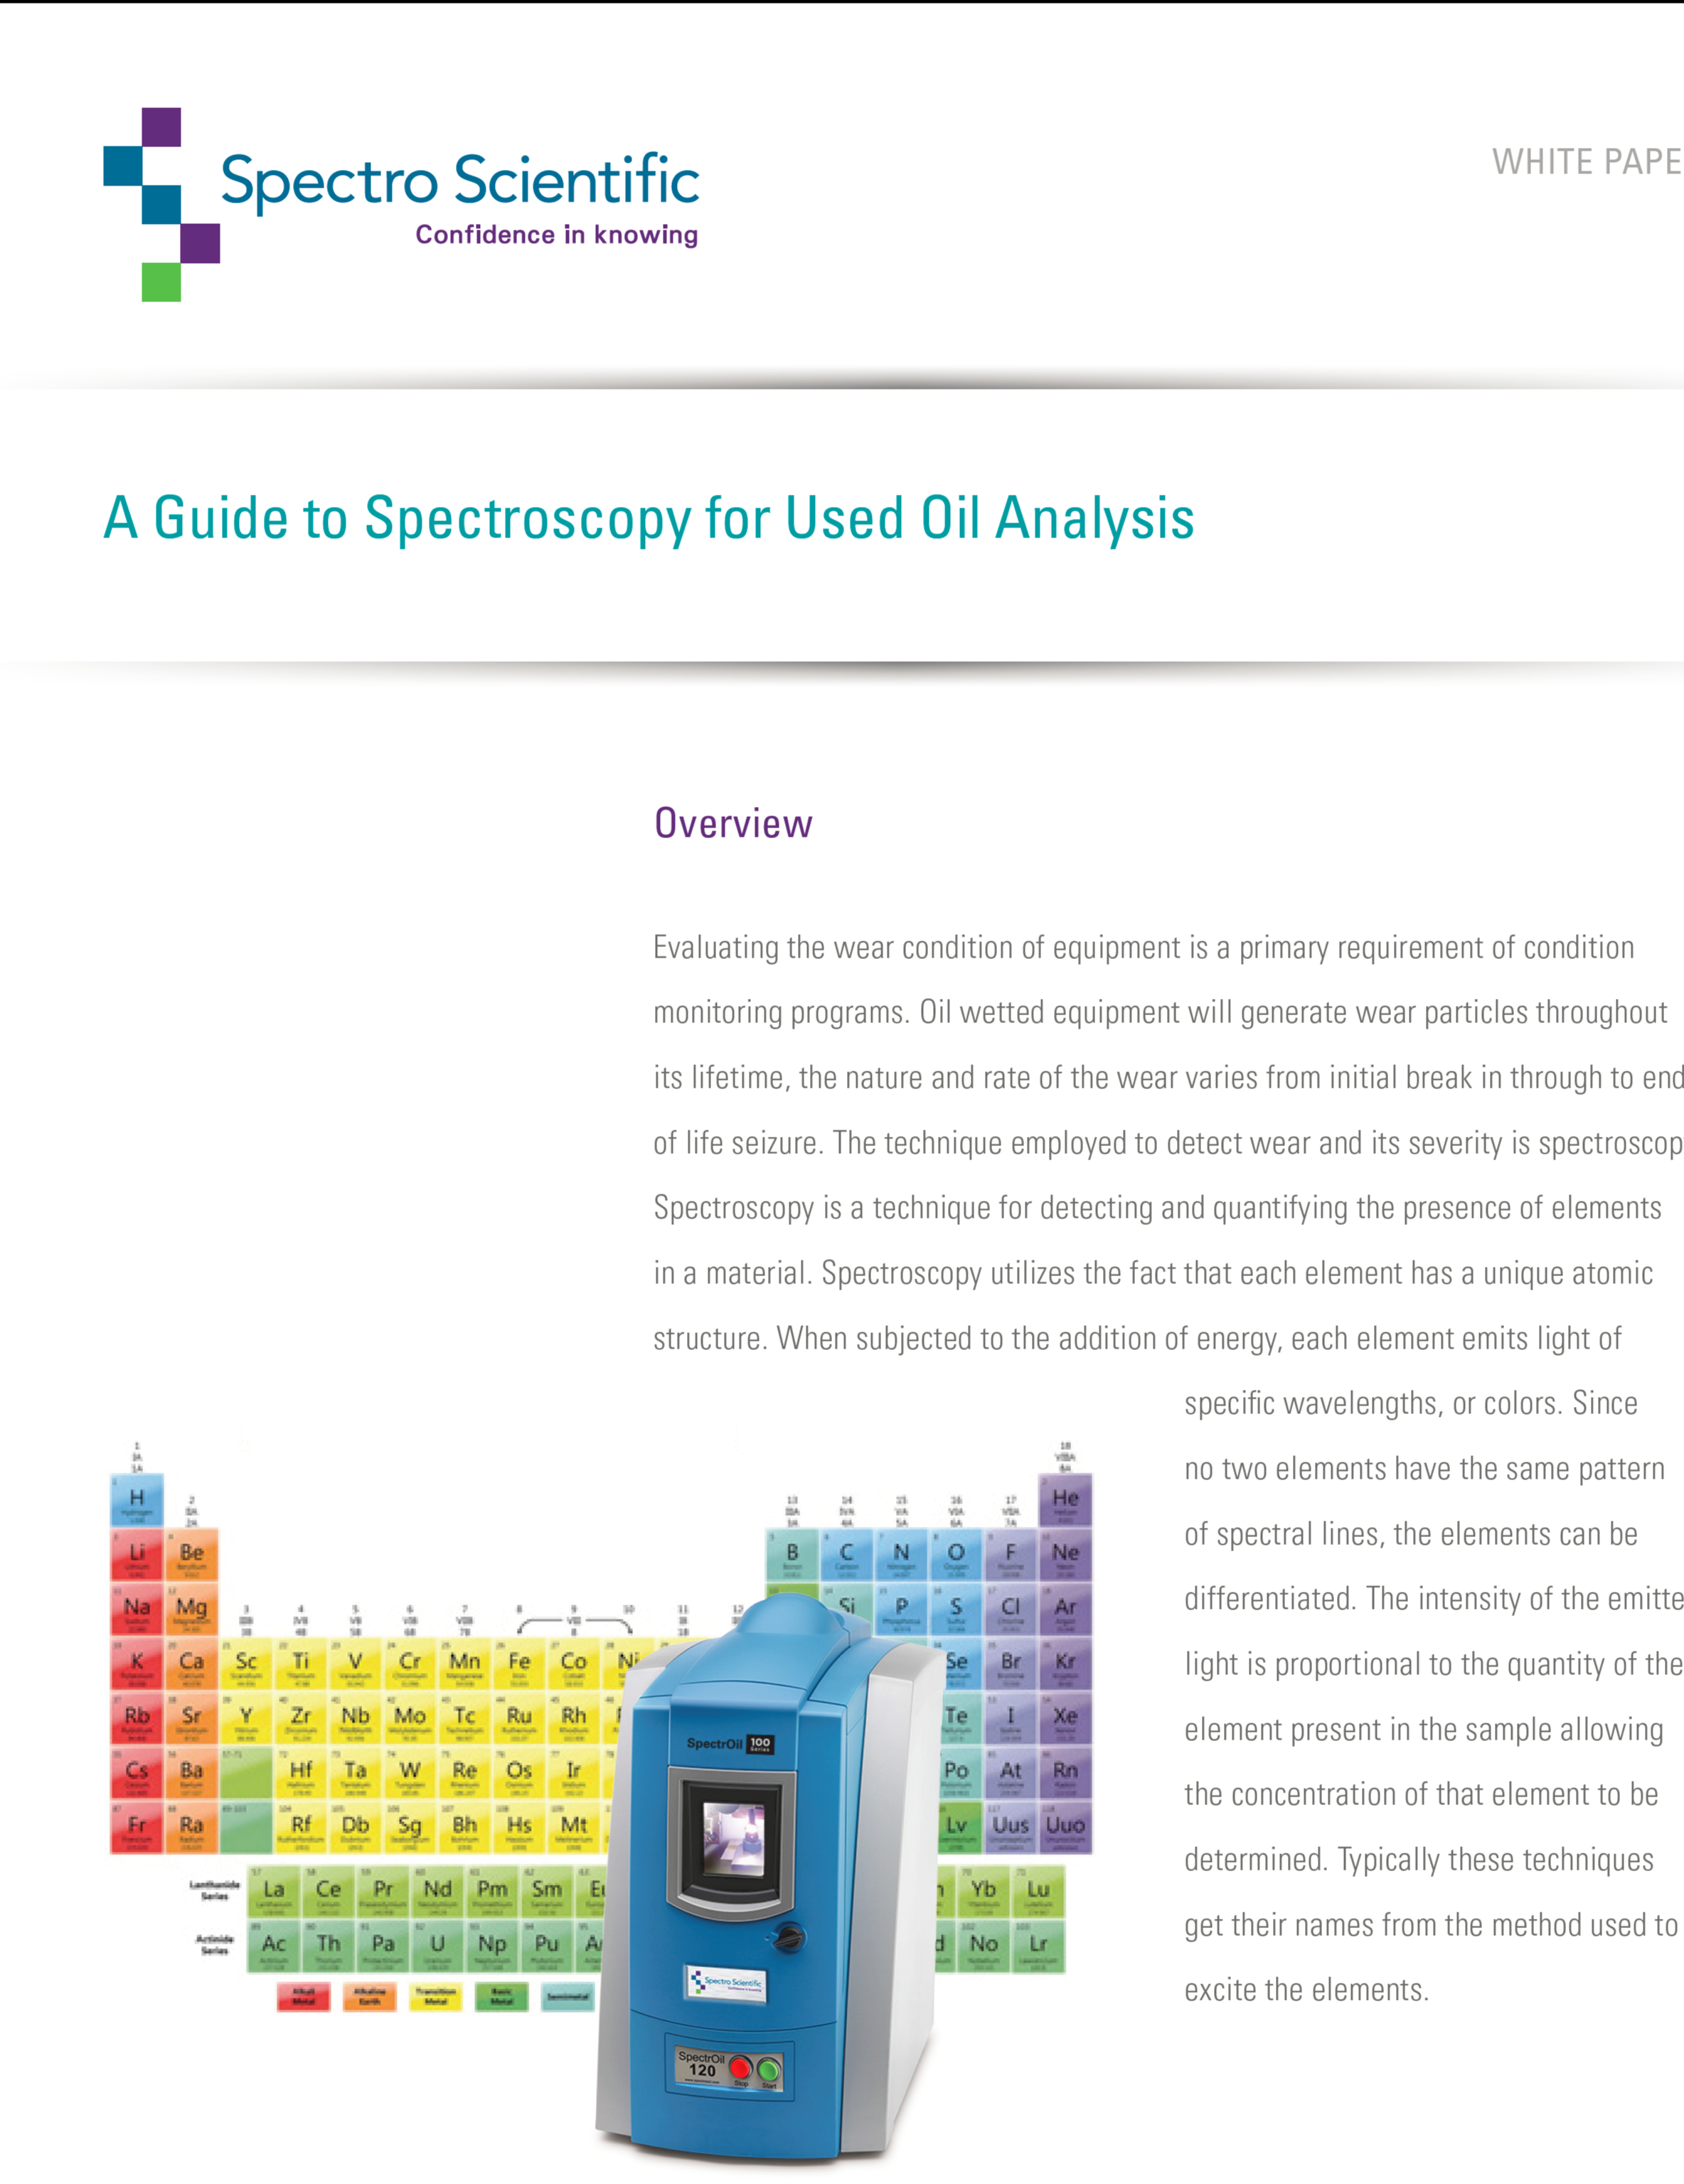 Guide_to_Spectroscopy_for_Used_Oil_Analysis.png